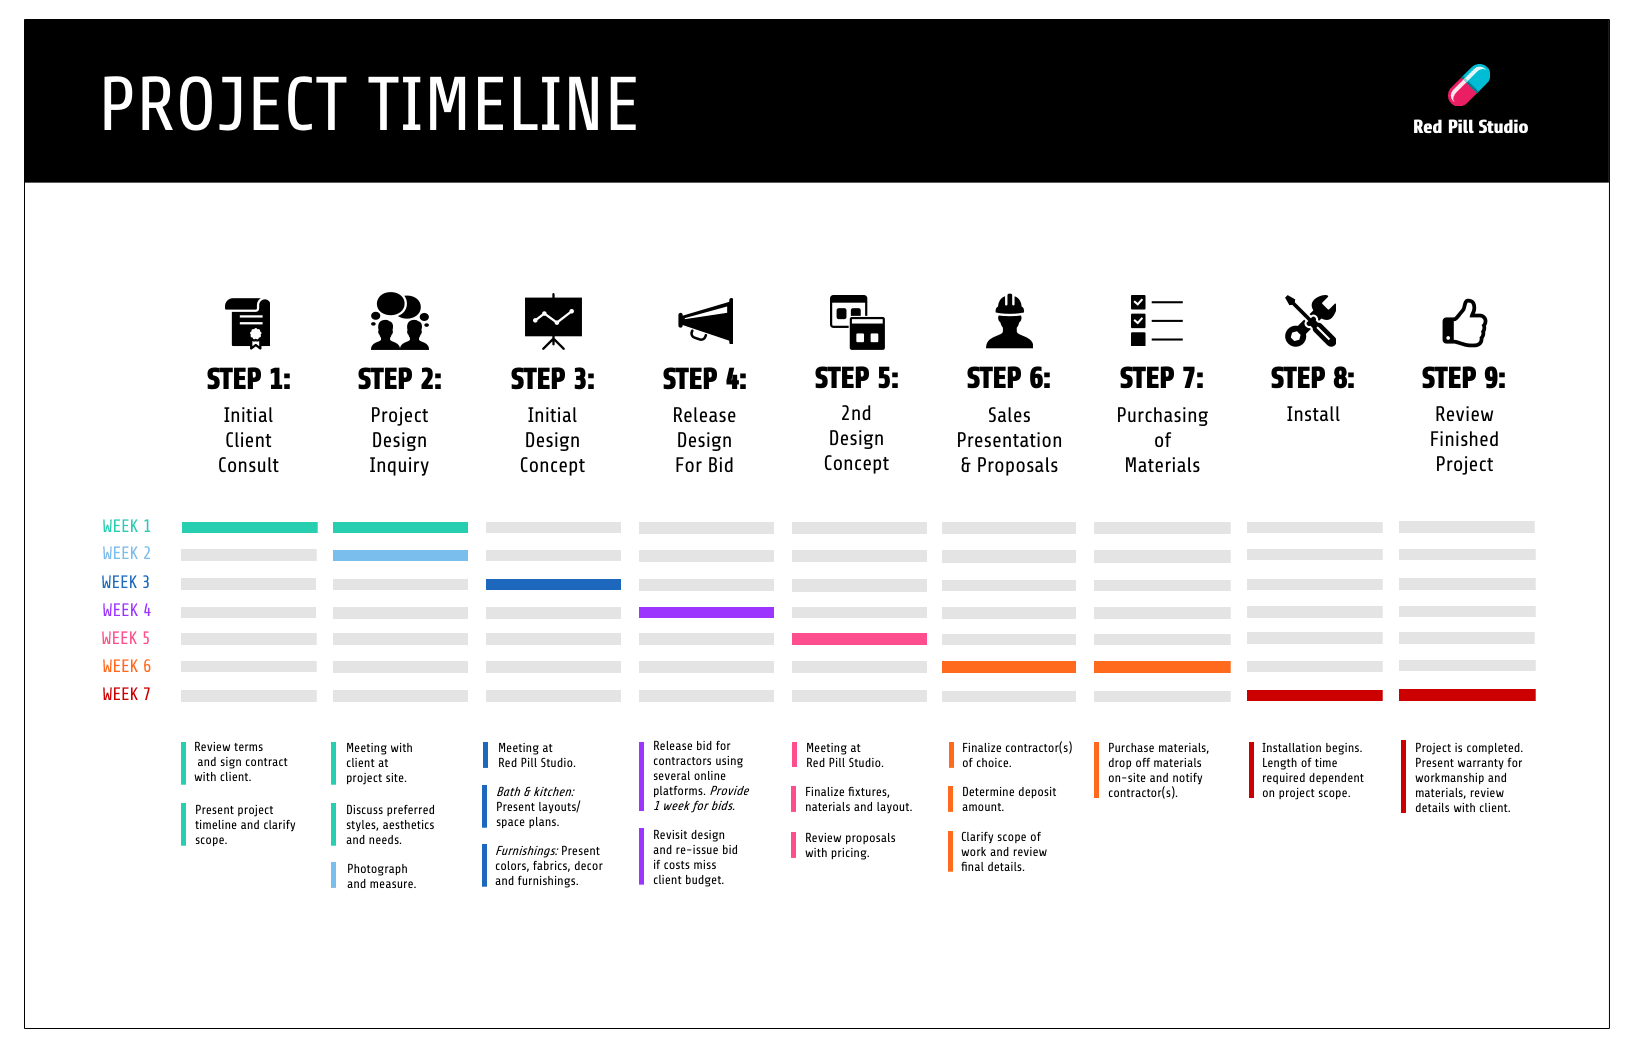 Project Plan Timeline Infographic